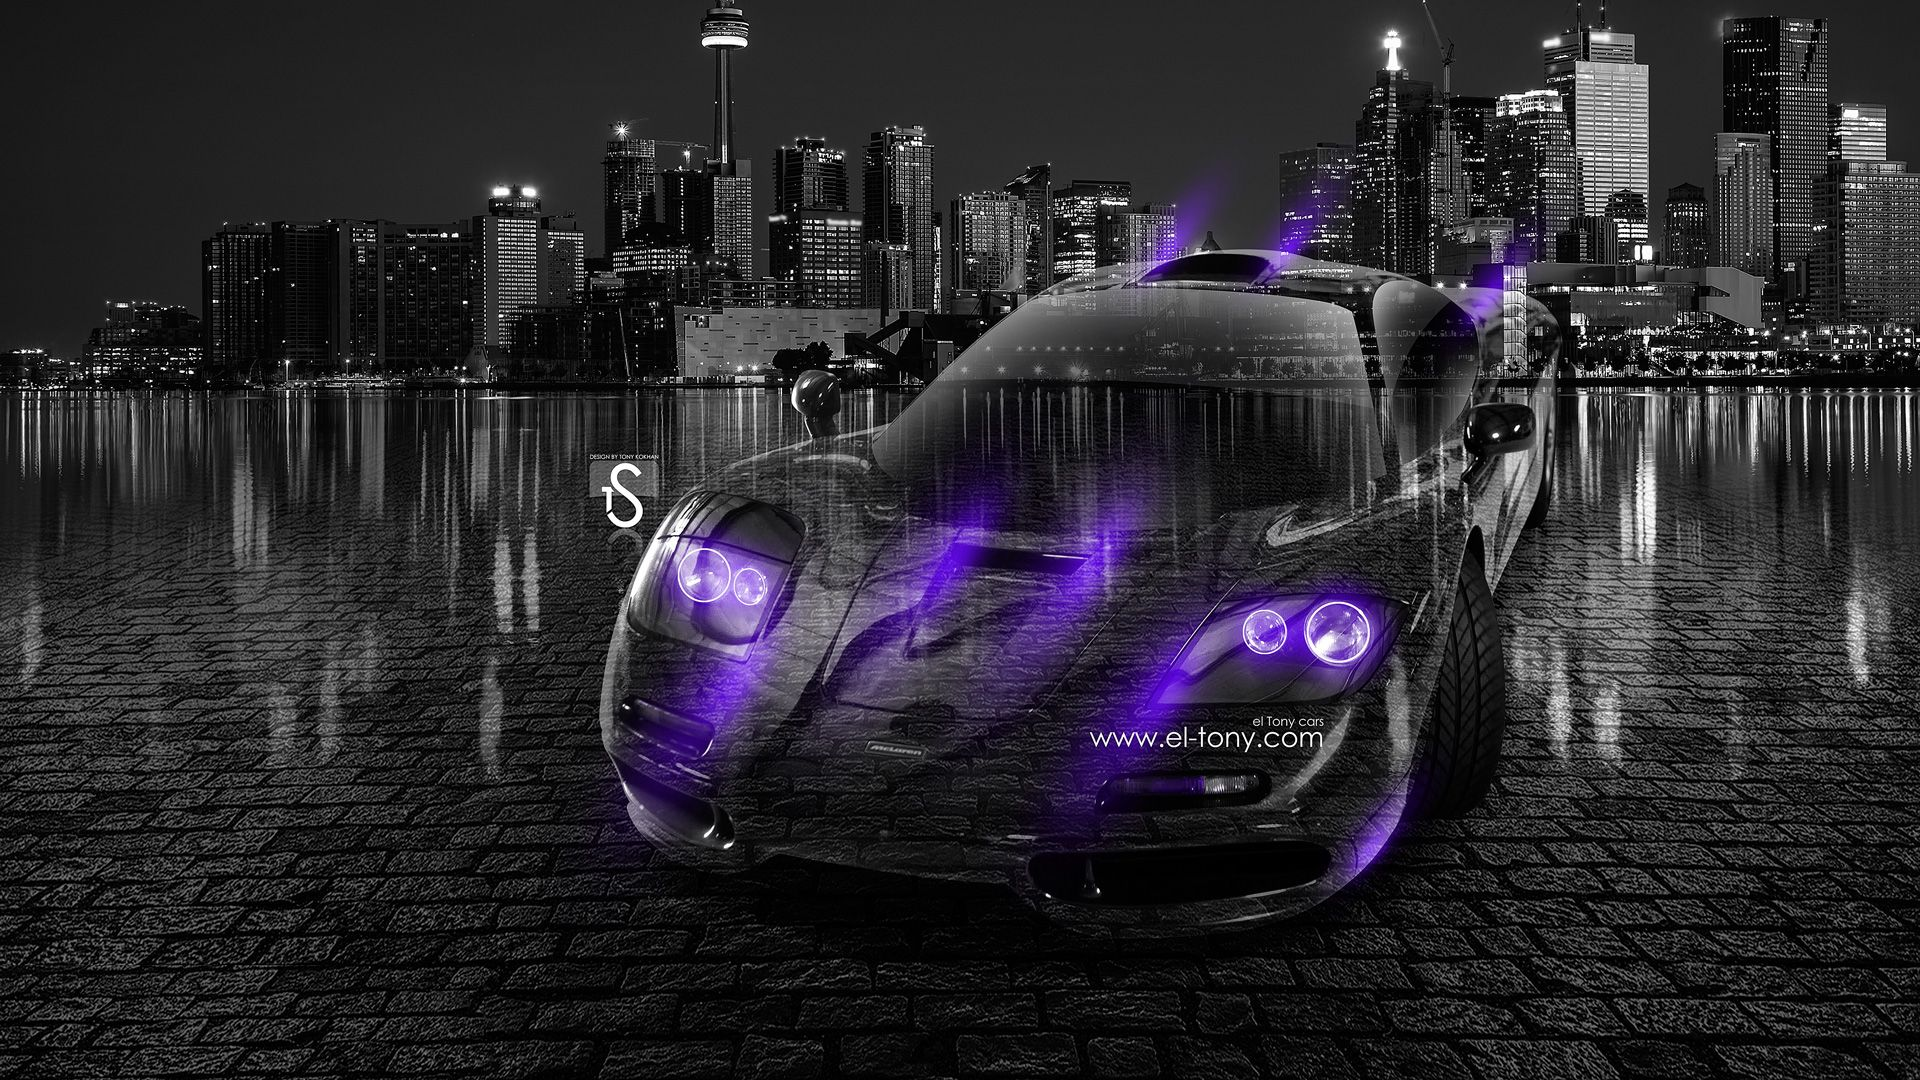 McLaren F1 Crystal City Car 2013 Violet Neon